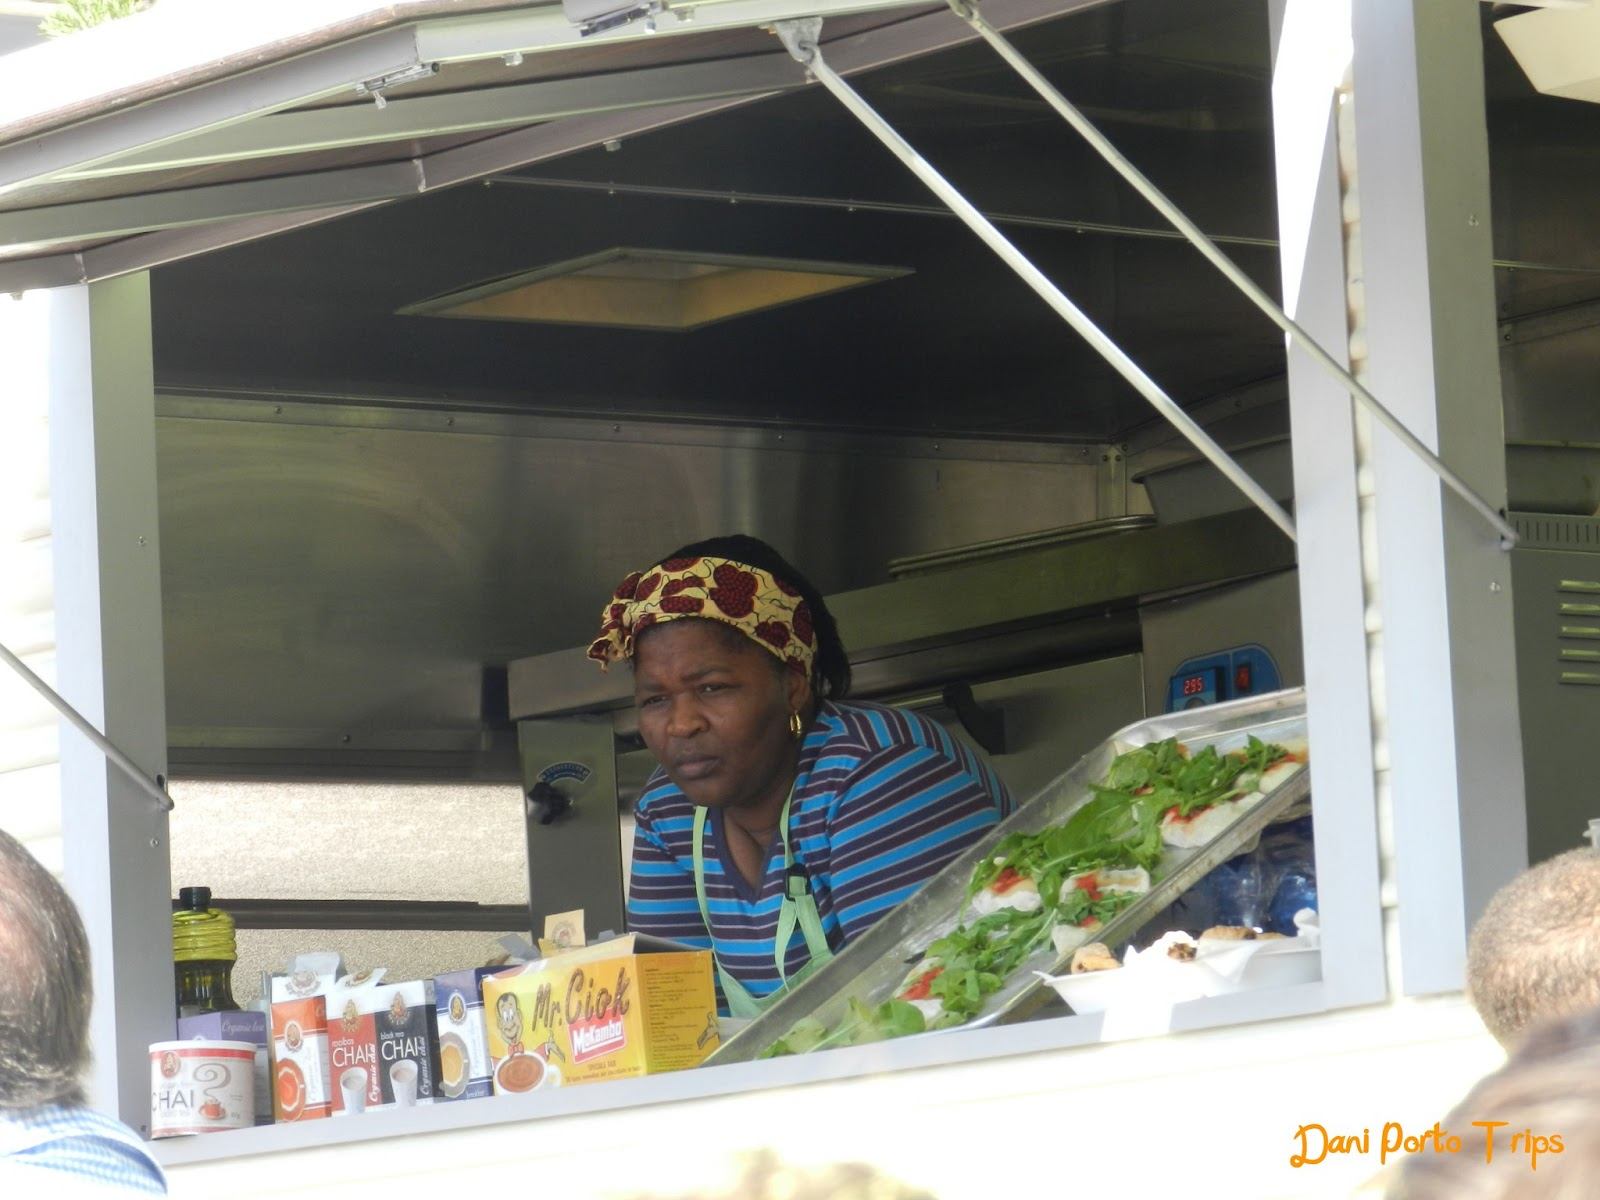 The Old Biscuit Mill, cape town, cidade do cabo, feira, market, gastronomia, pizza